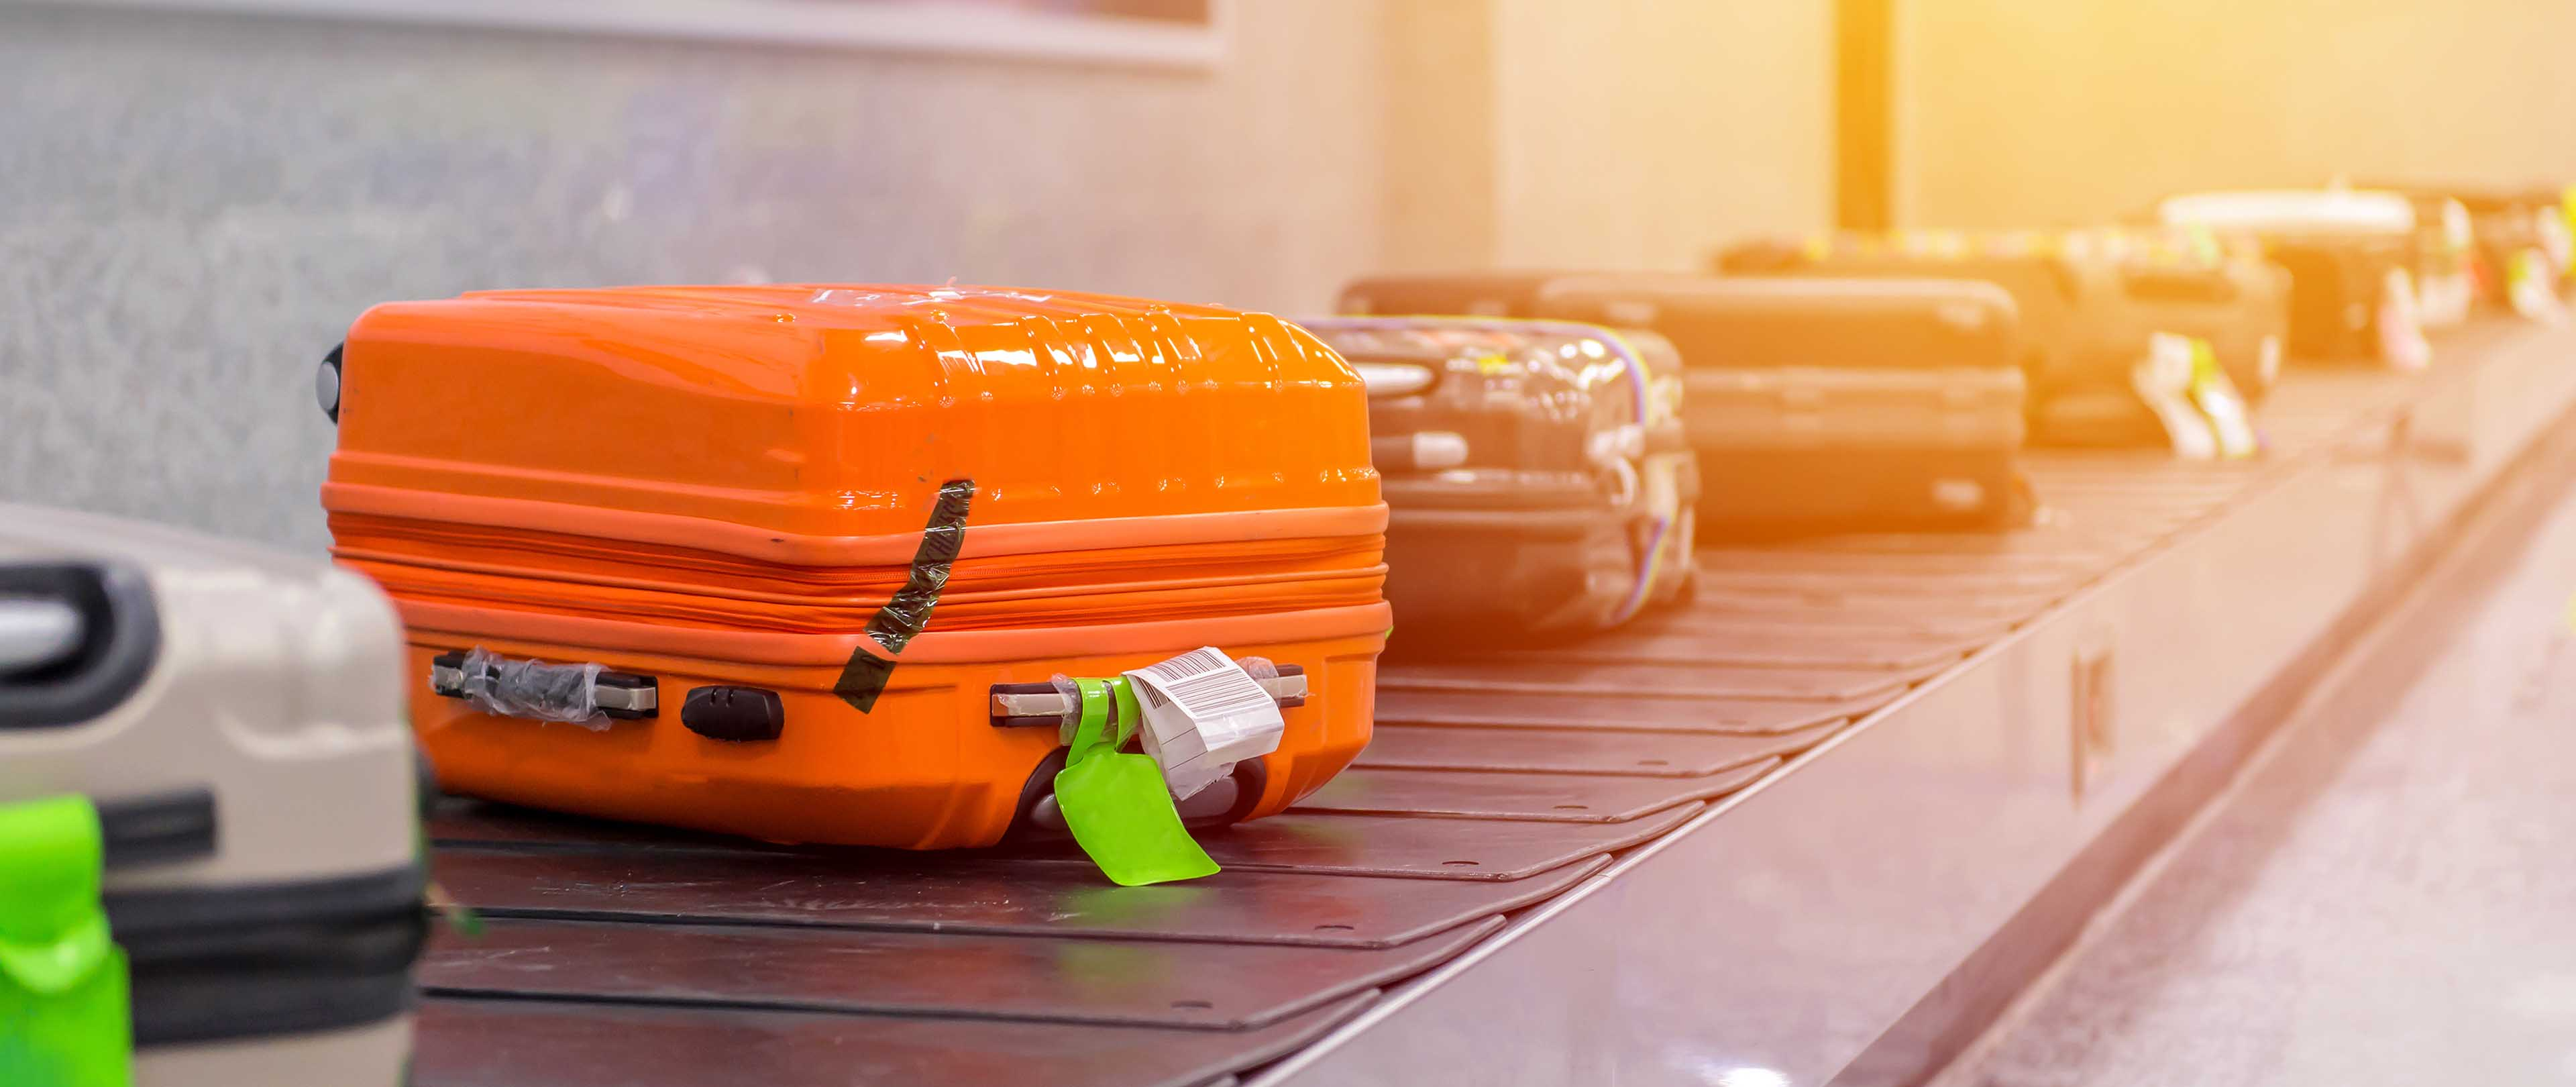 5 packing hacks for flying with less baggage